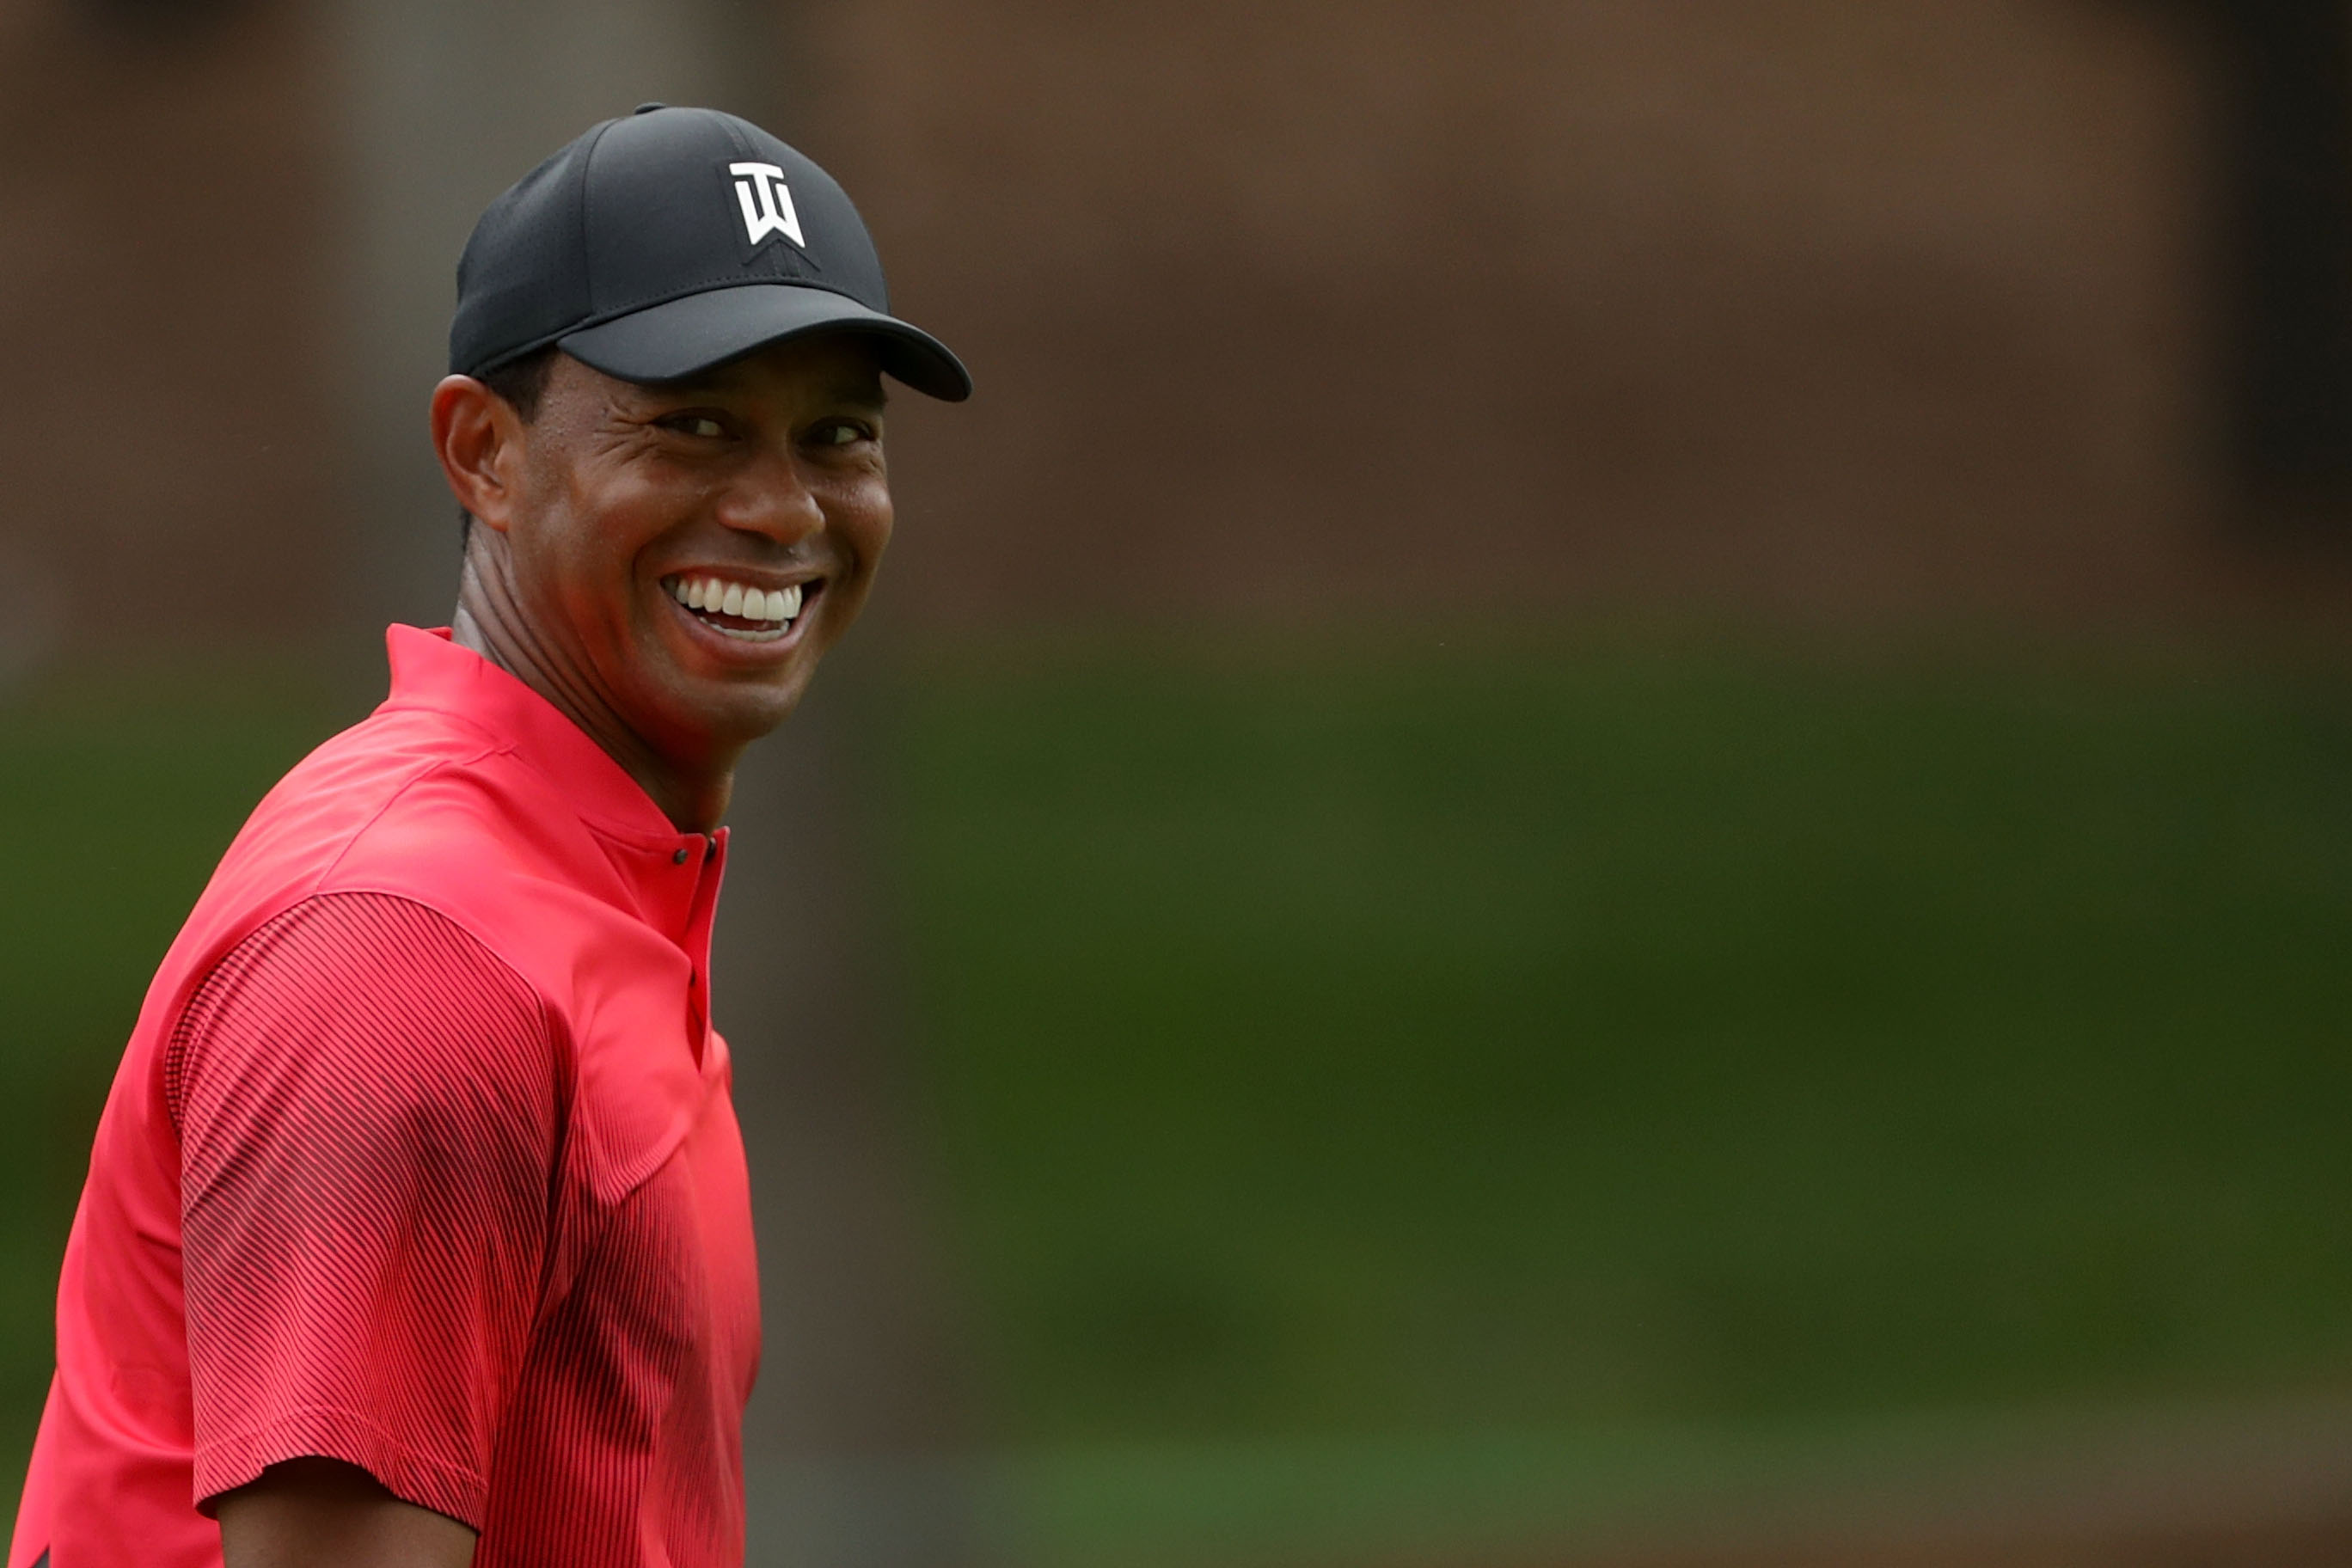 Tiger Woods, Phil Mickelson, Rickie Fowler struggle at TPC Sawgrass